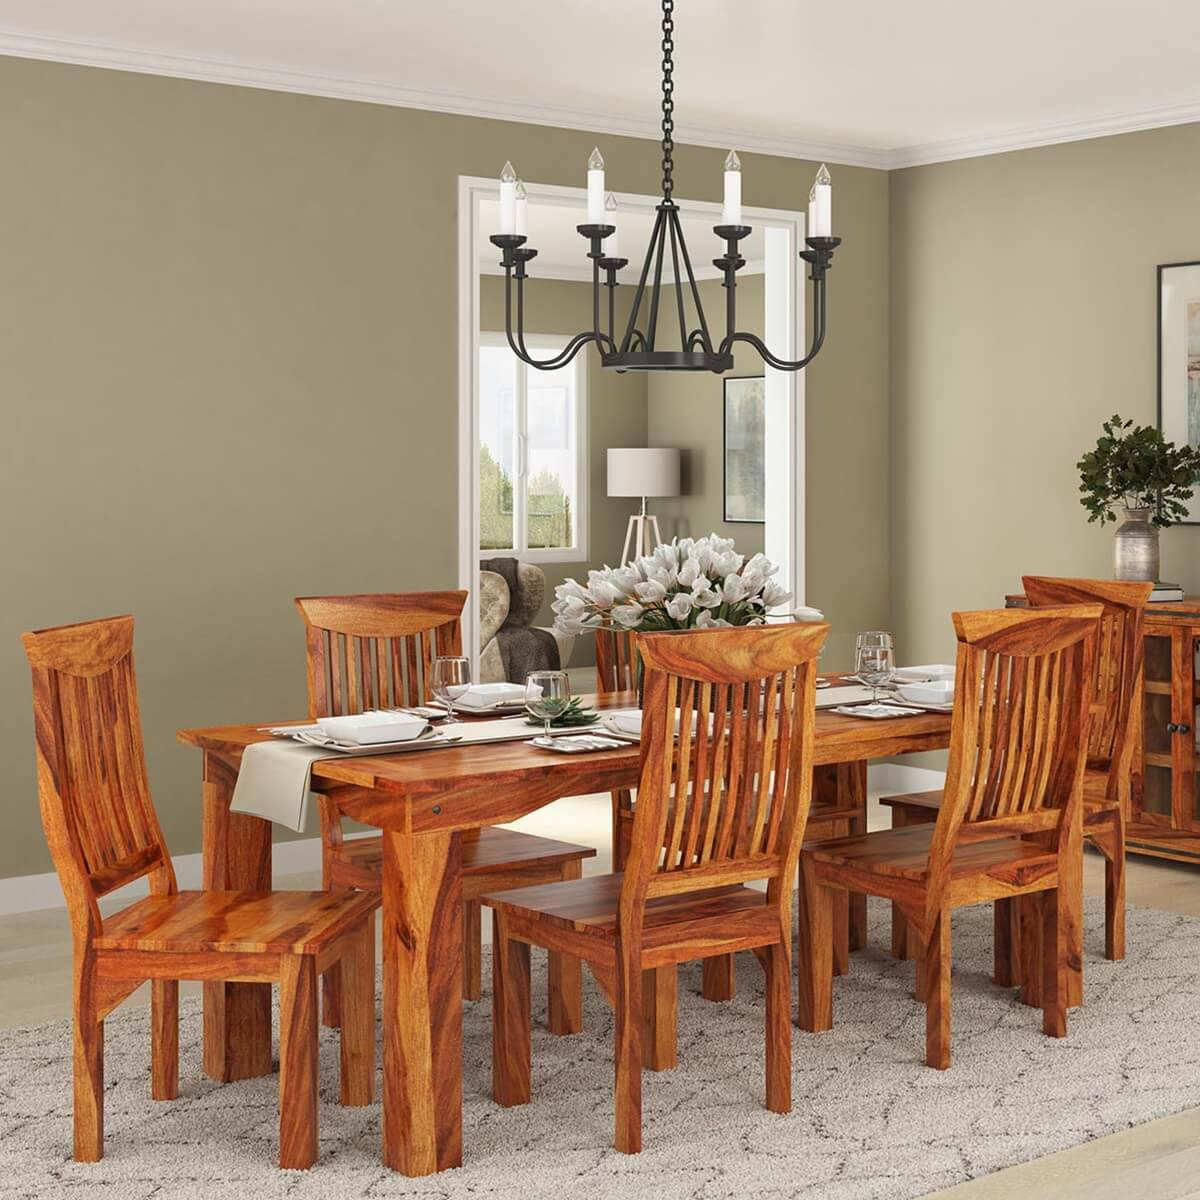 Dining Table Sets ~ Idaho modern rustic solid wood dining table chair set